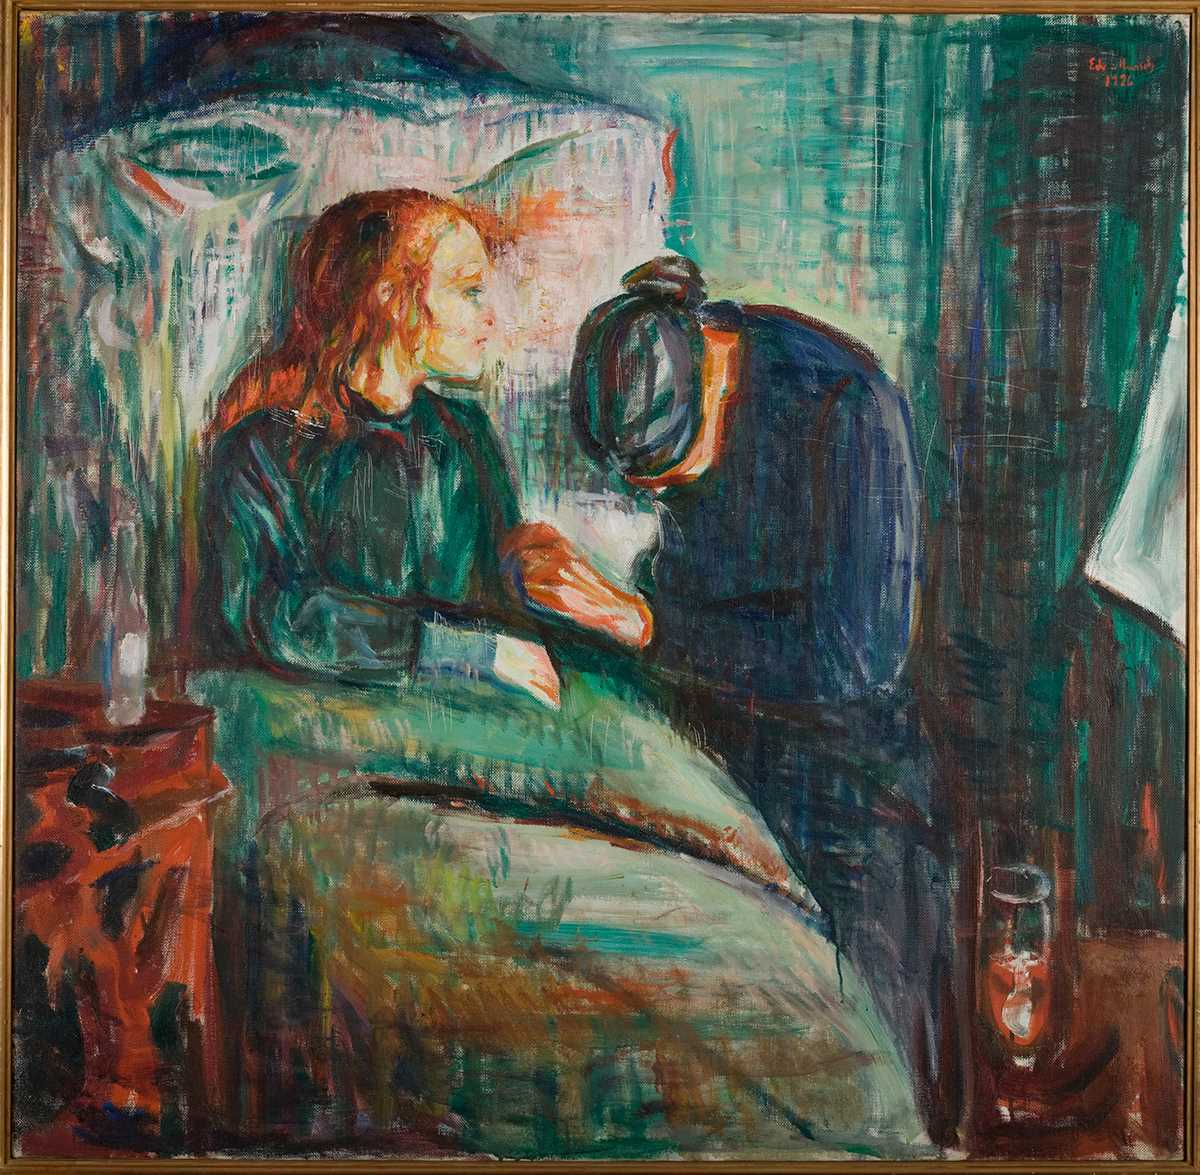 Edvard Munch: The Sick Child. Oil on canvas, 1927. Photo © Munchmuseet